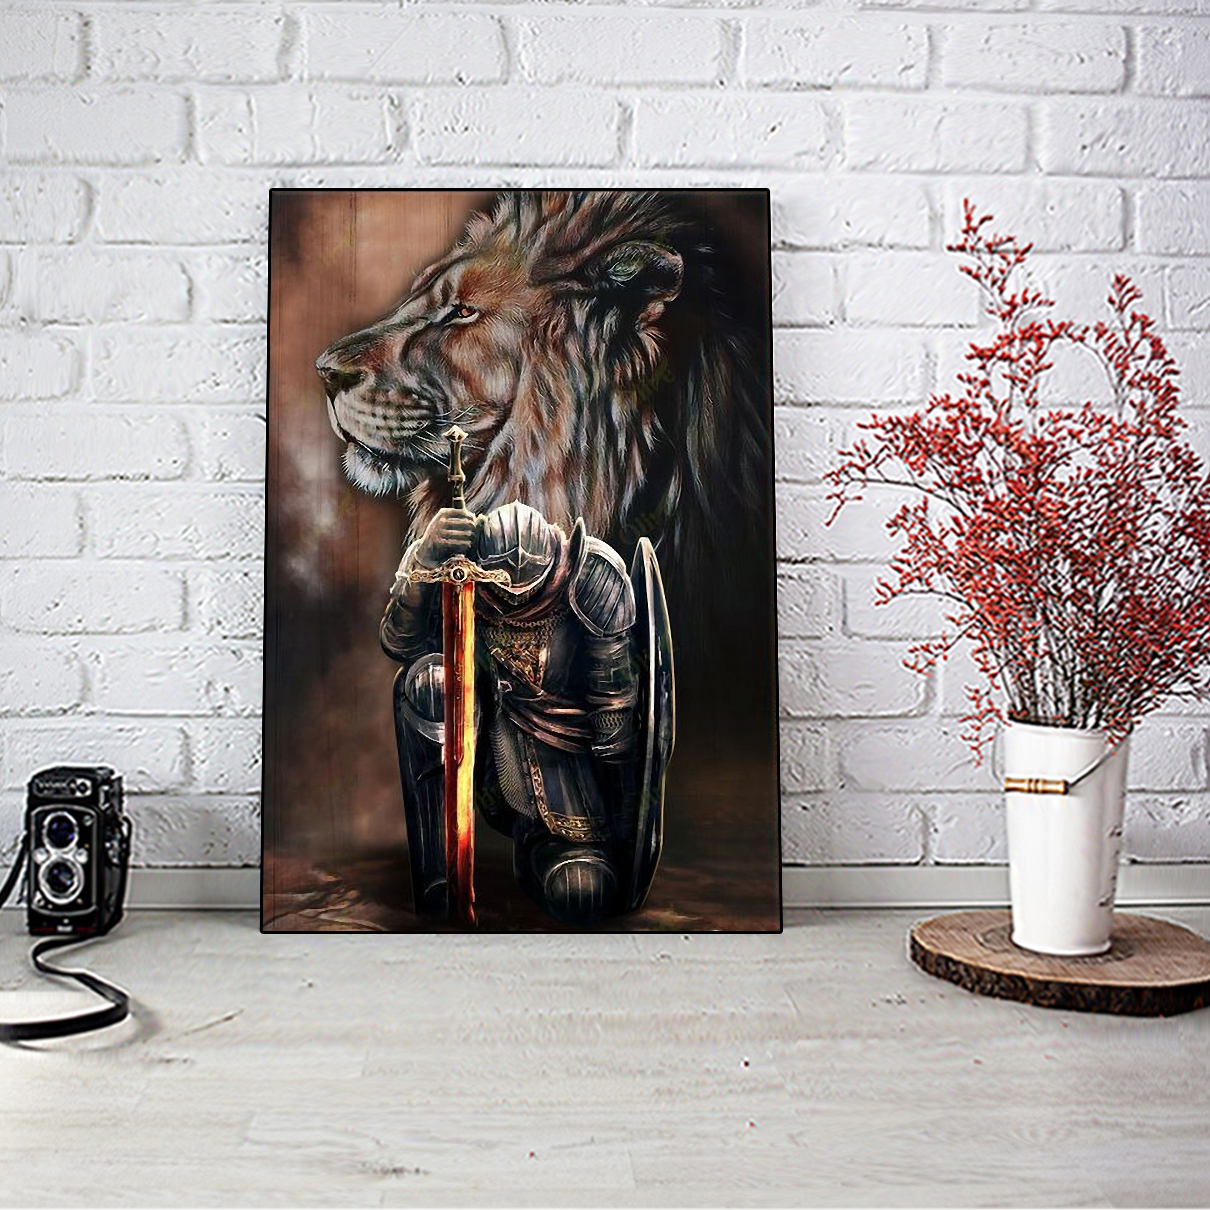 Lion Warriors I am the storm canvas medium